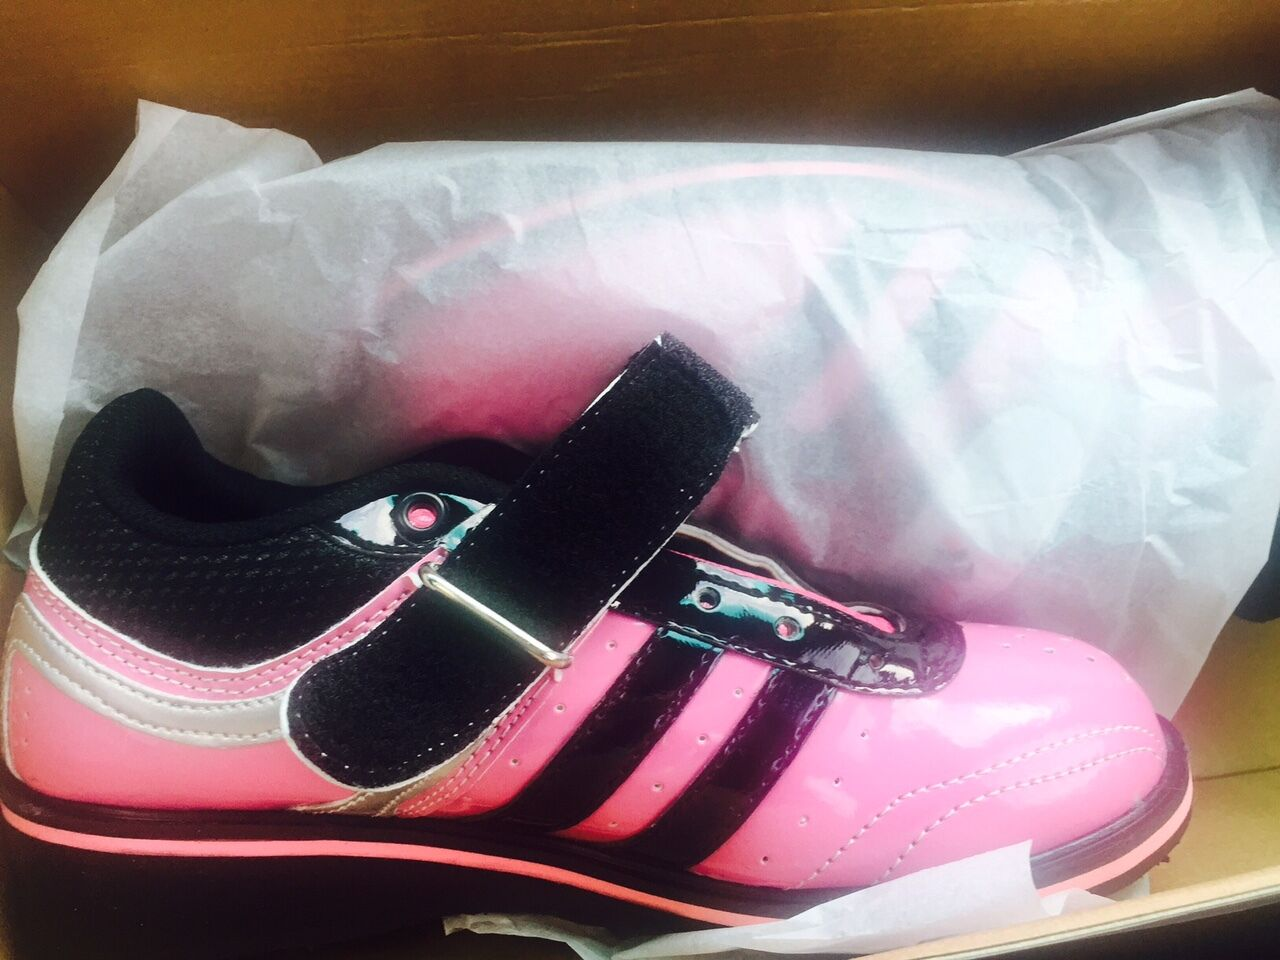 Weightlifting shoes Pink size 4.5